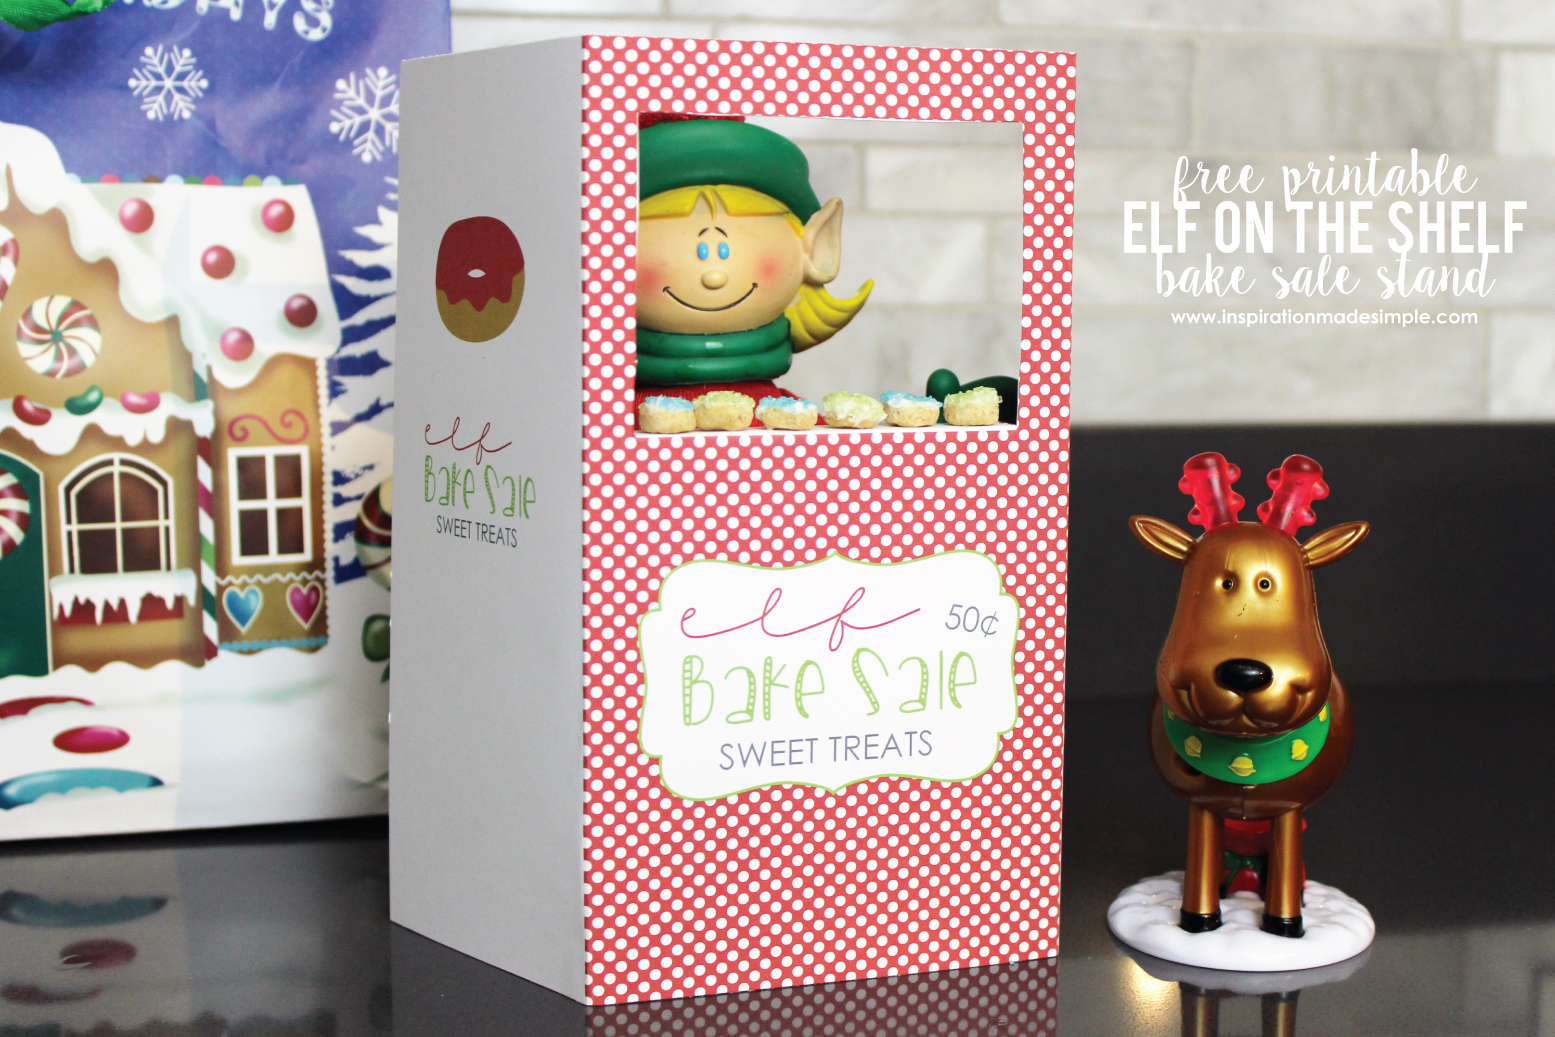 Printable Elf Bake Sale Stand